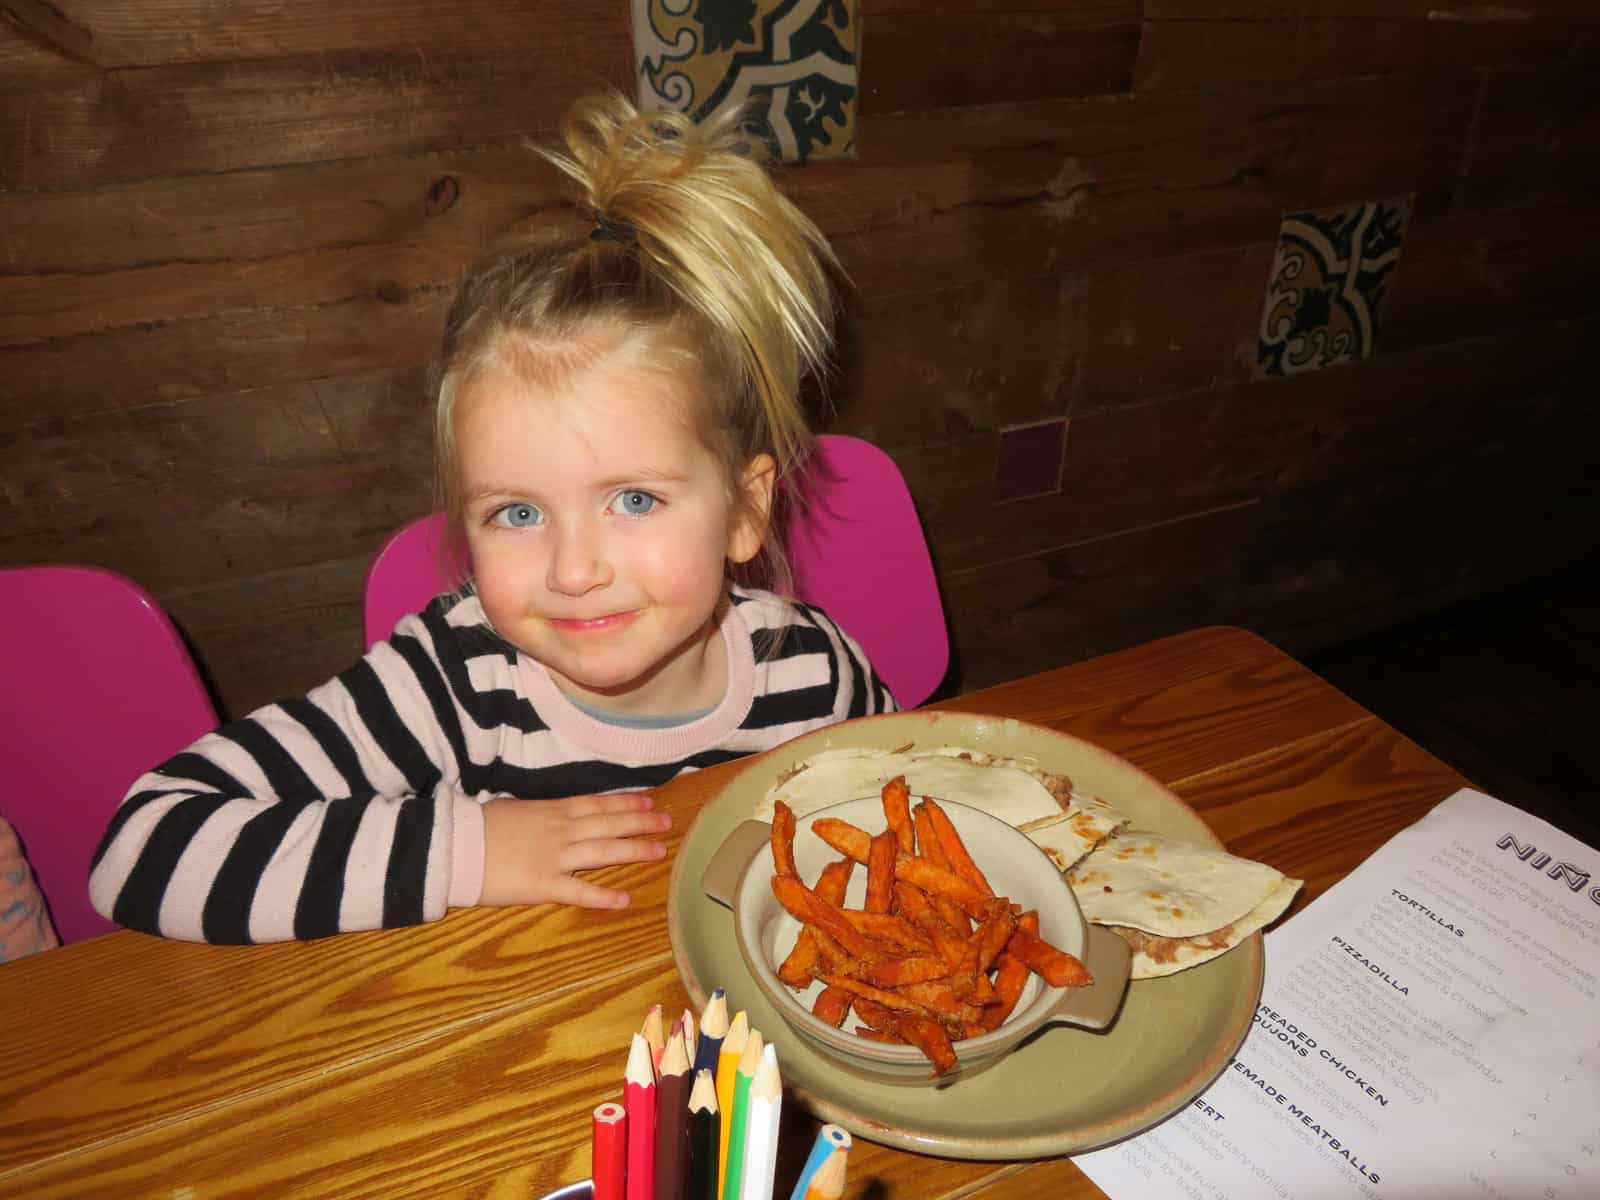 girl sat at a table with plate in front of her containing wraps and sweet potato fries